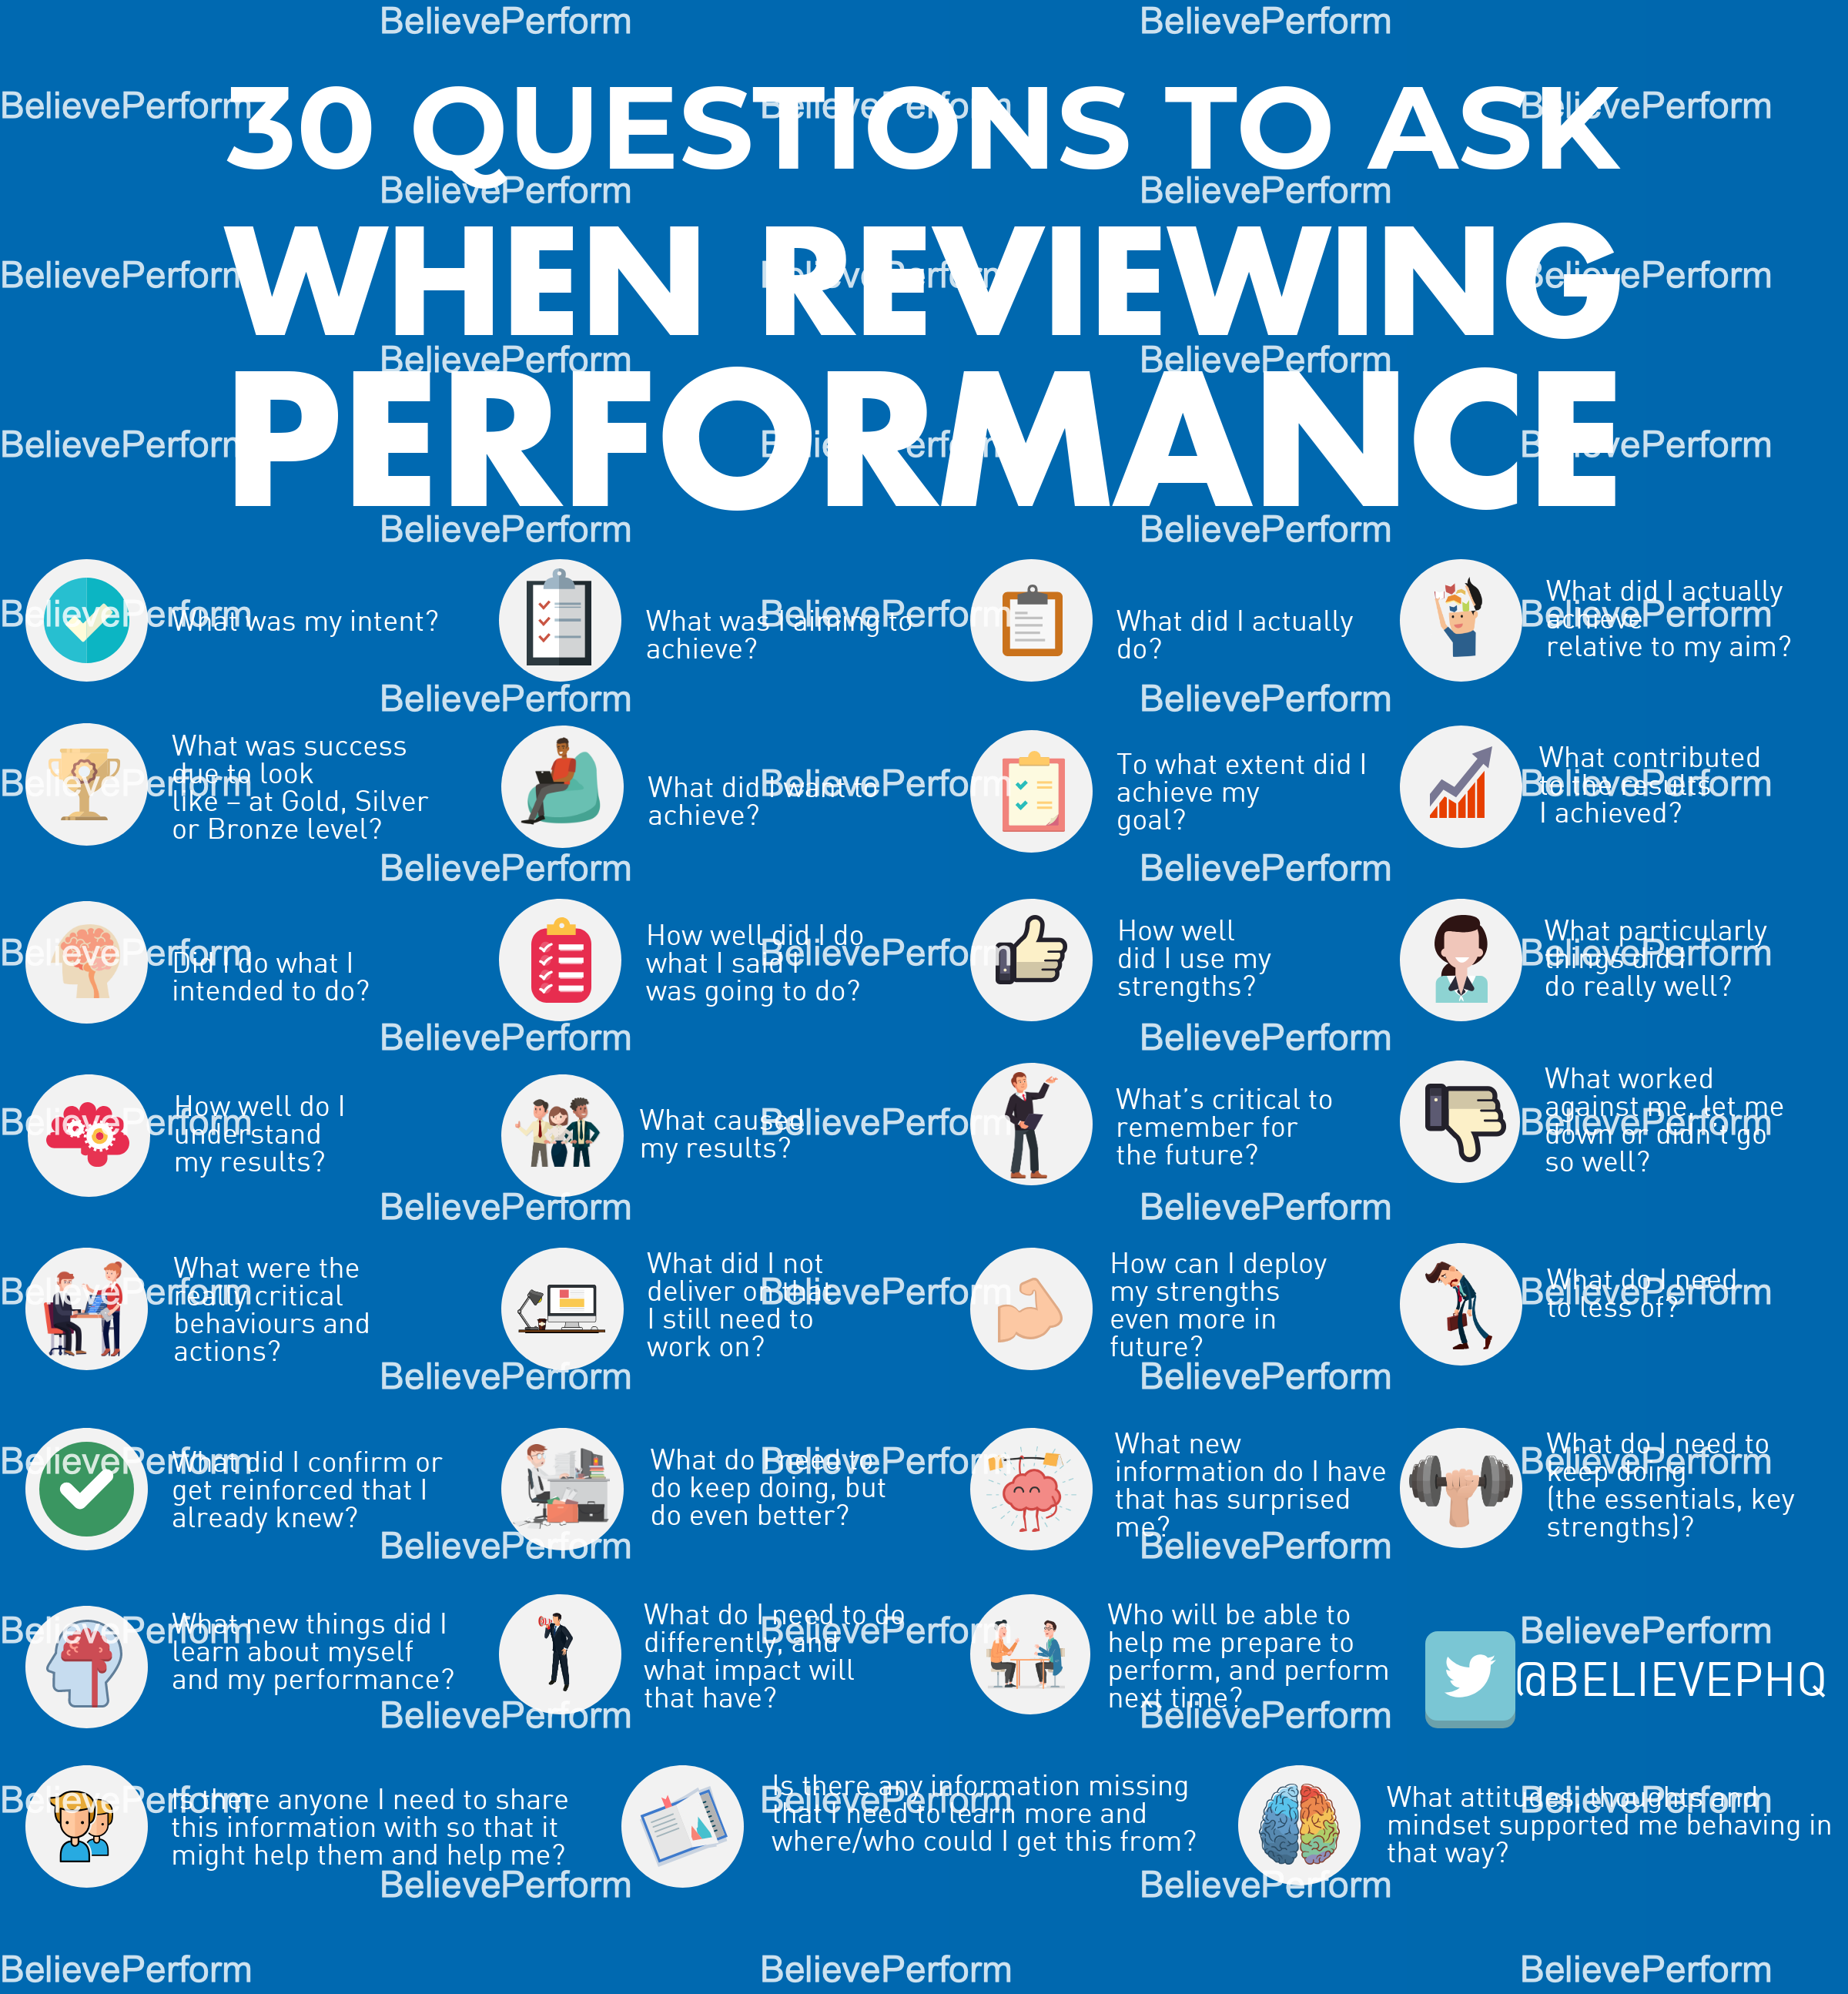 30 questions to ask when reviewing performance